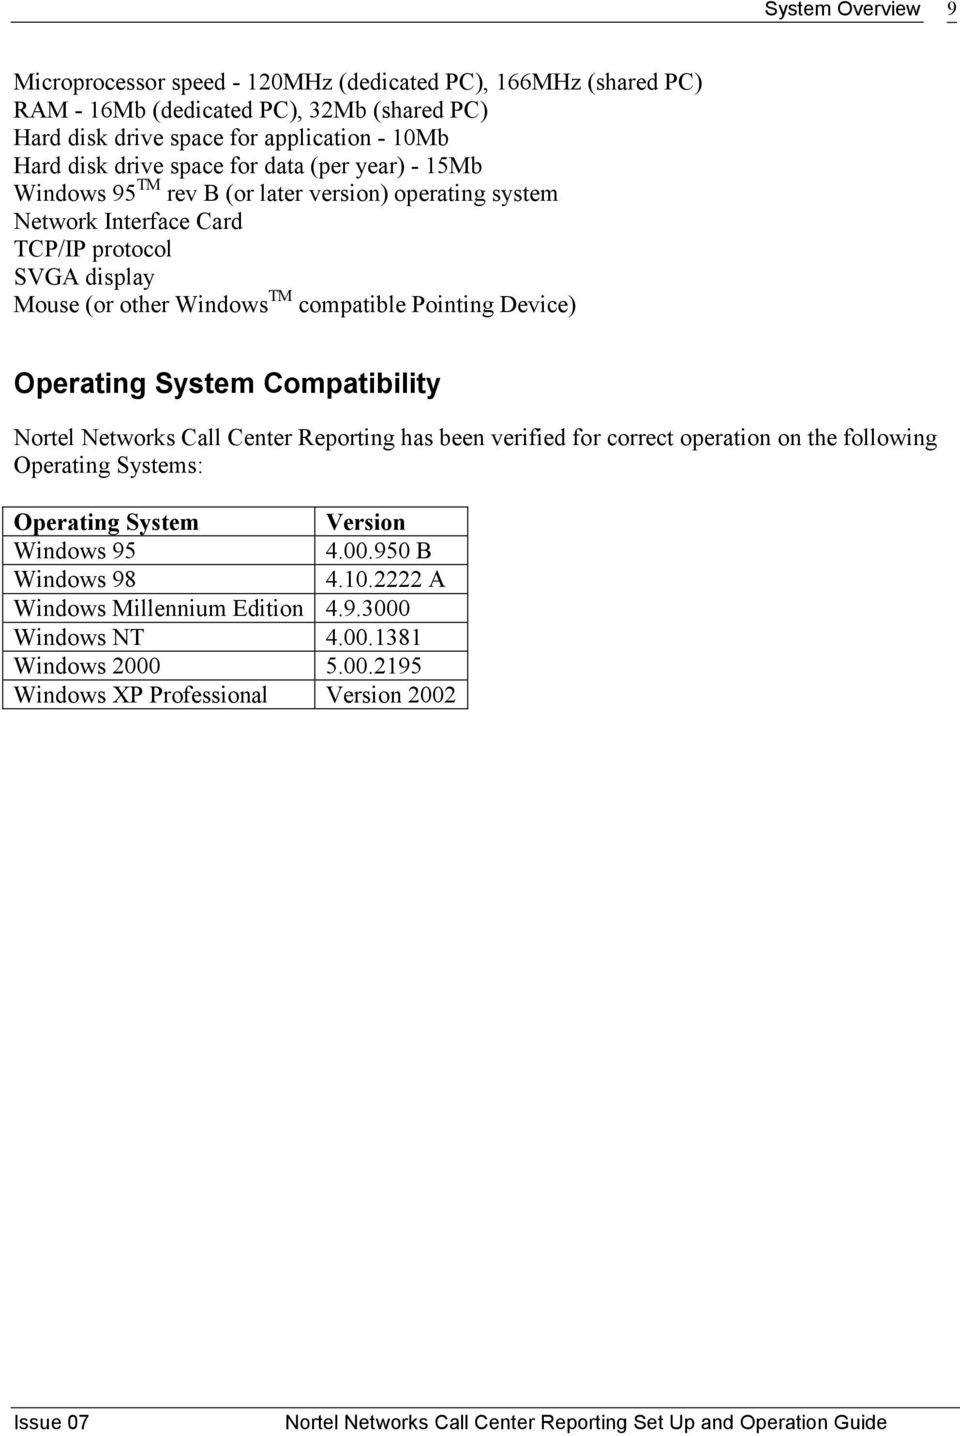 System Compatibility Nortel Networks Call Center Reporting has been verified for correct operation on the following Operating Systems: Operating System Version Windows 95 4.00.950 B Windows 98 4.10.